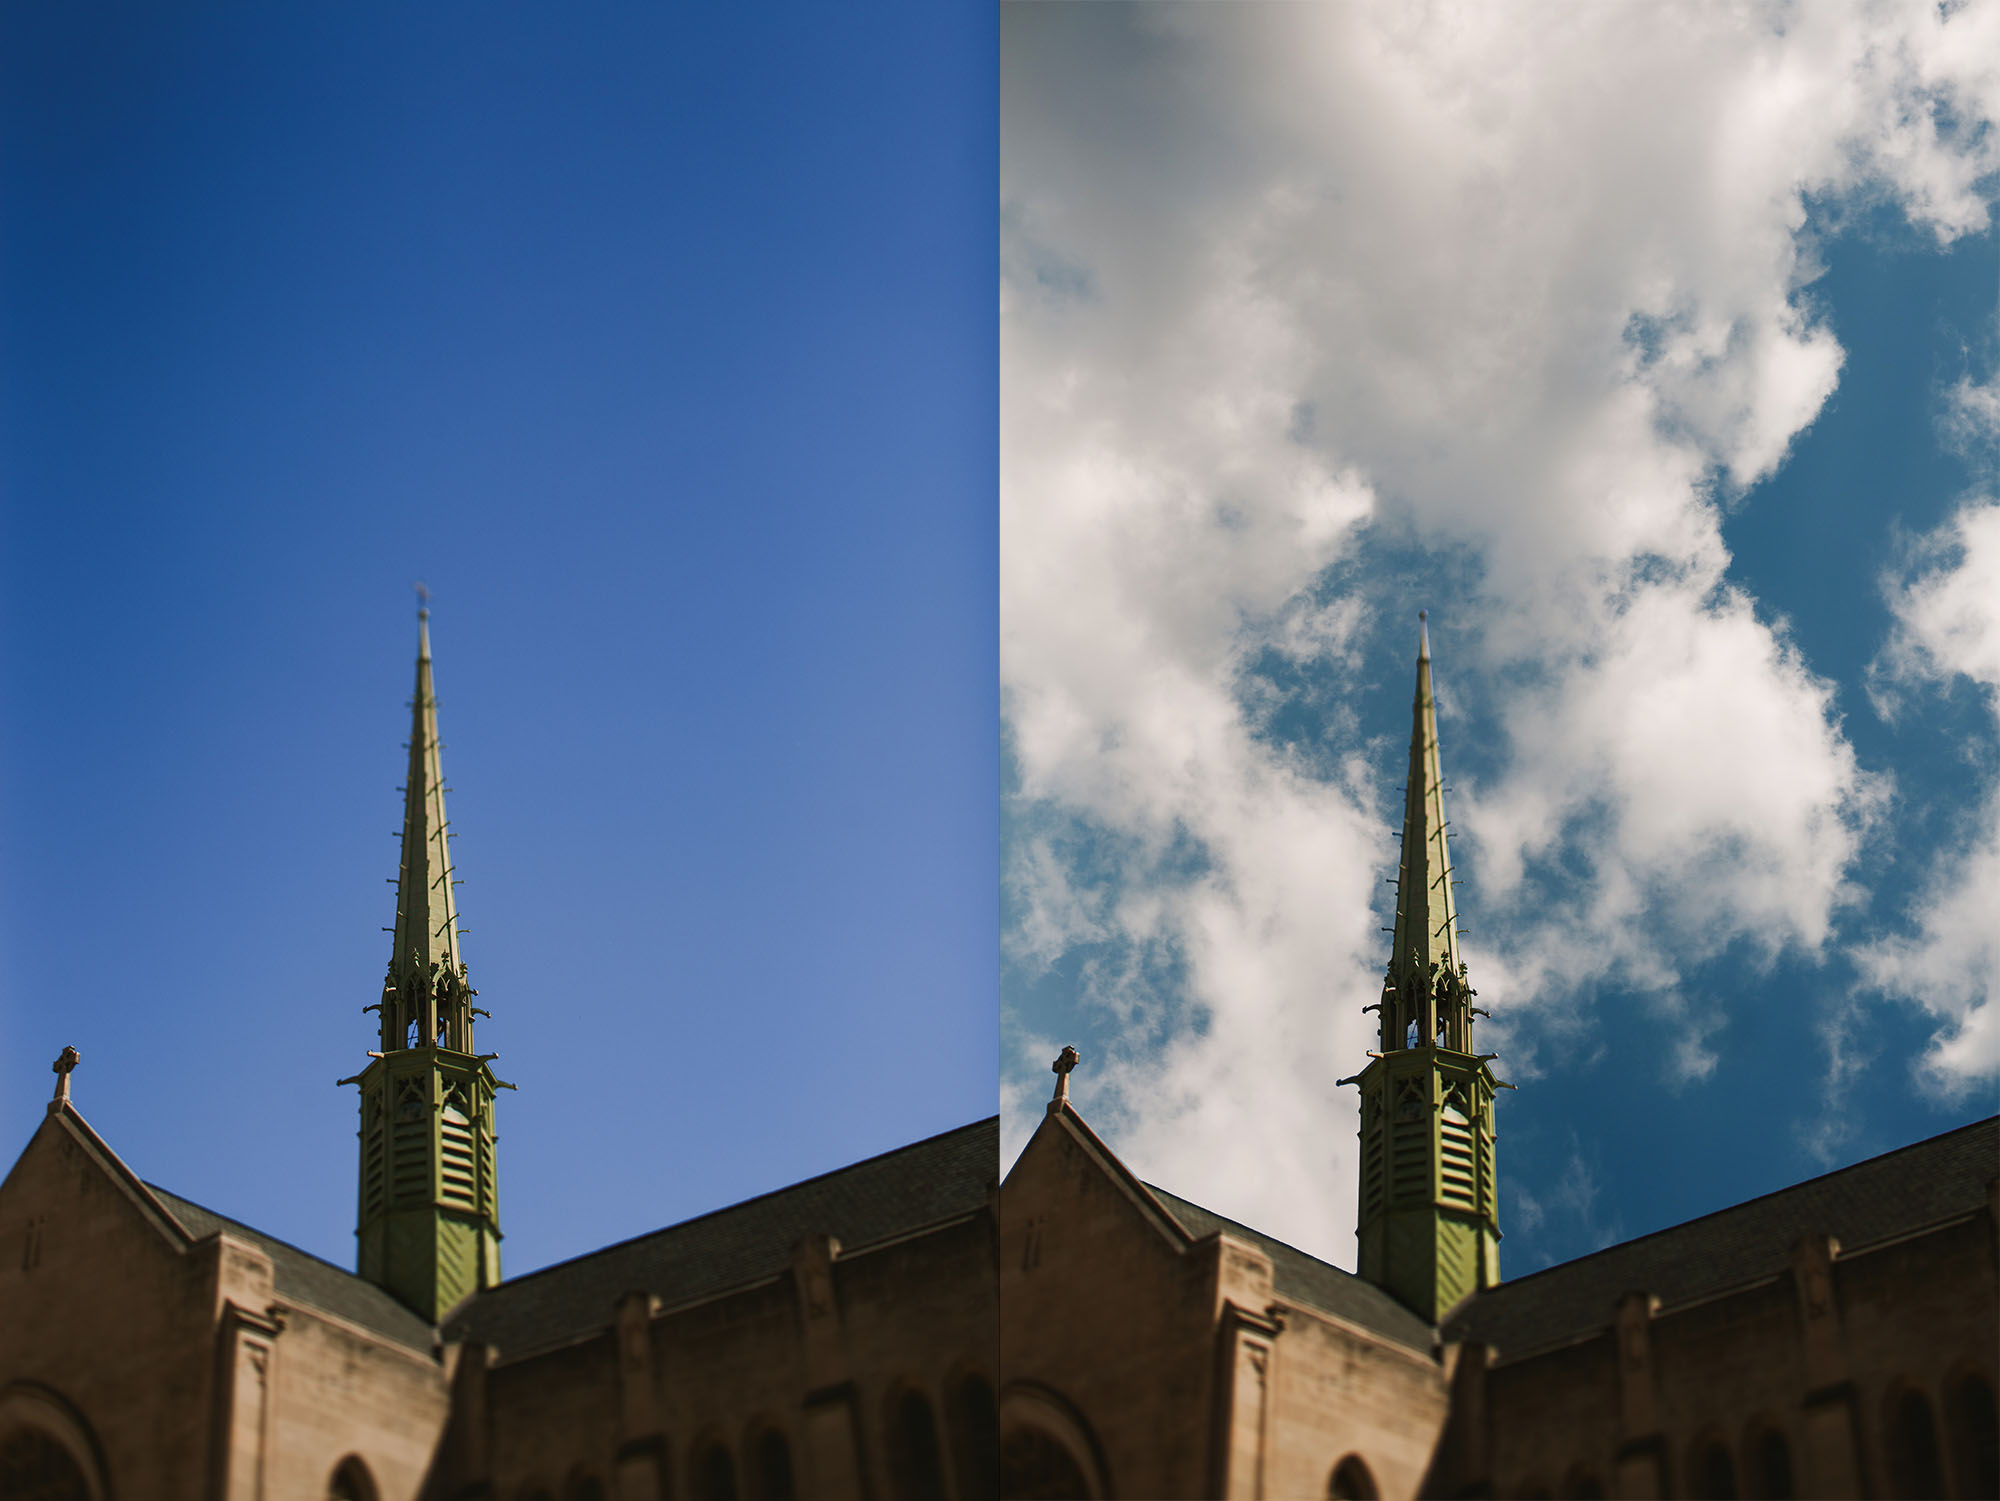 tilt-shift-photo-of-church-with-sky-overlay-added-by-april-nienhuis